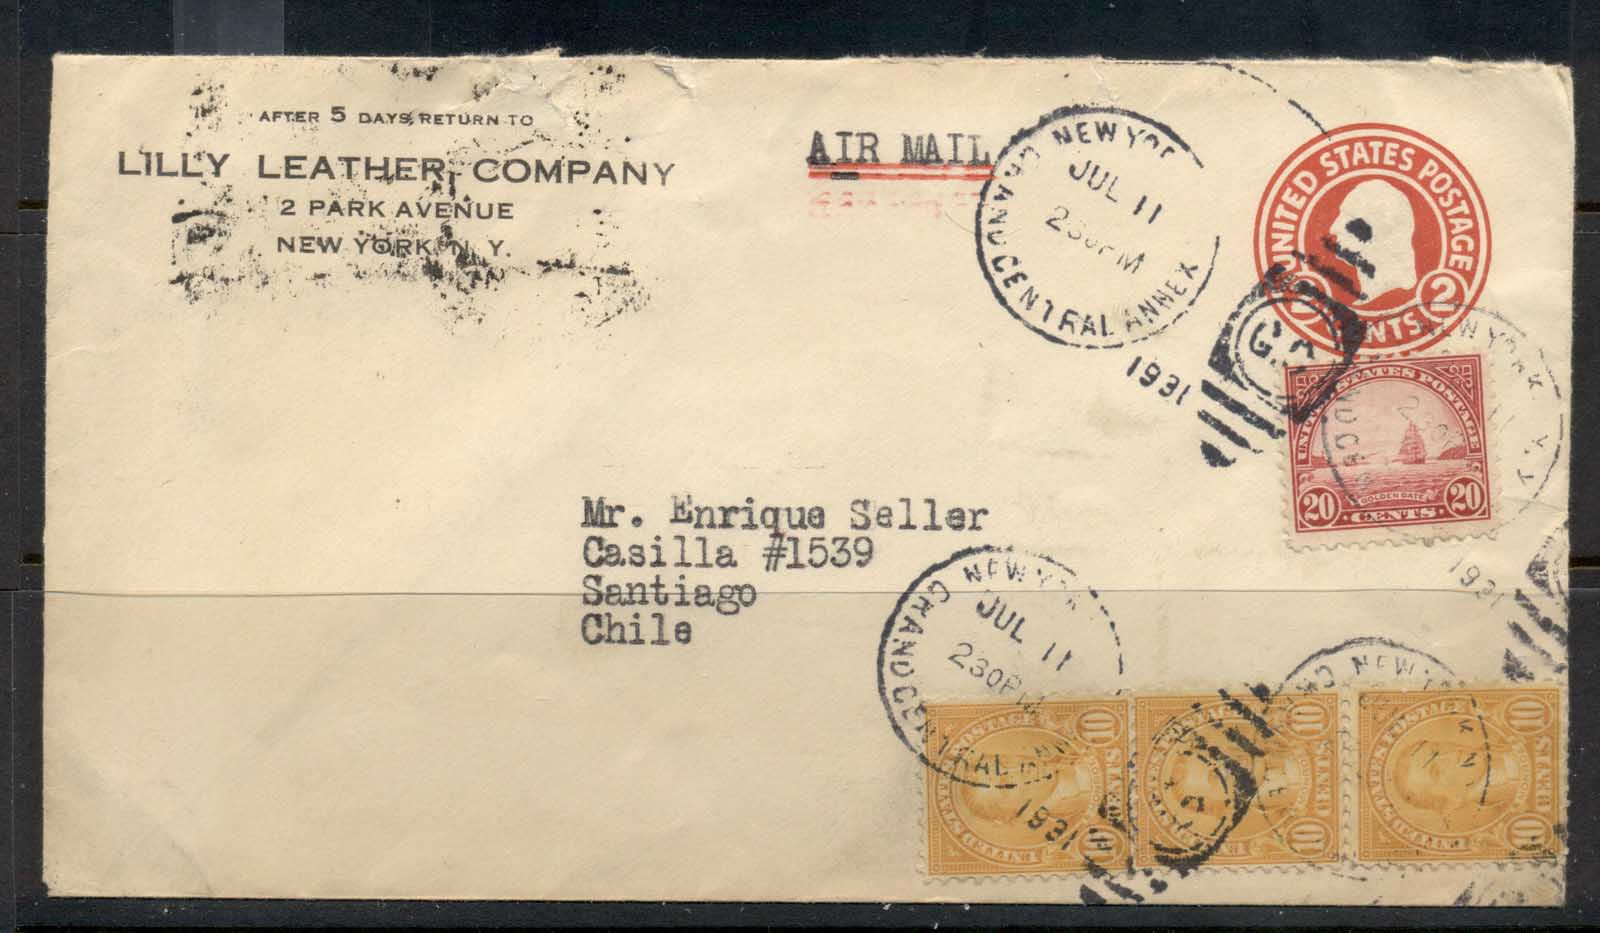 USA 1922-38 Fourth Bureau Uprated PSE Lilly Leather CC New York Air Mail to Chile cover